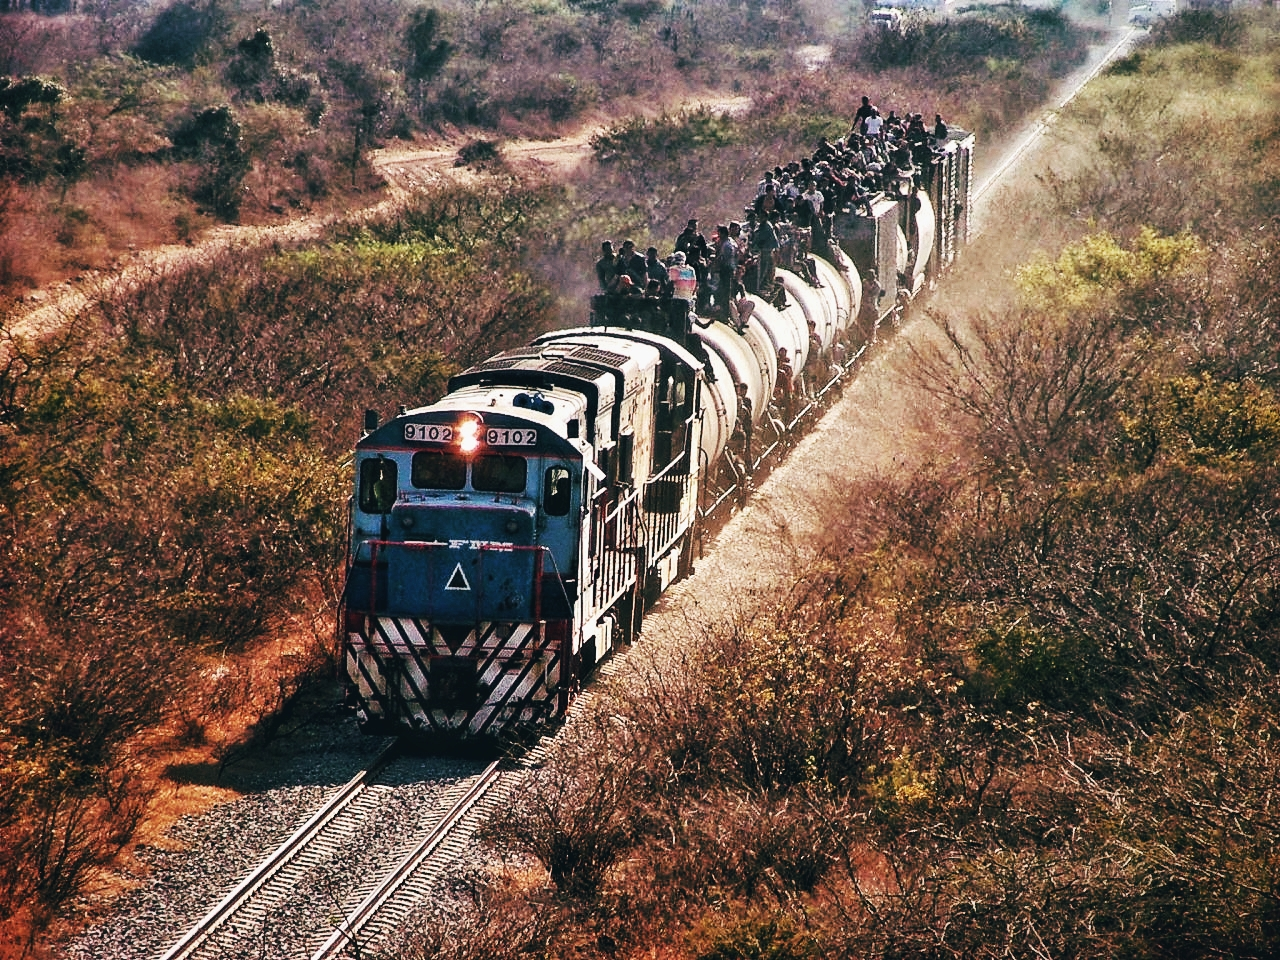 """Children and adolescents usually ride on the Mexican freight train known as """"The Beast"""" to head north. On the train, they can be victims of raids or extortion, and many experience falls that seriously injure them, including life-threatening injuries  (""""Hermanos en el Camino"""" Shelter Collection, Oaxaca, México.)"""